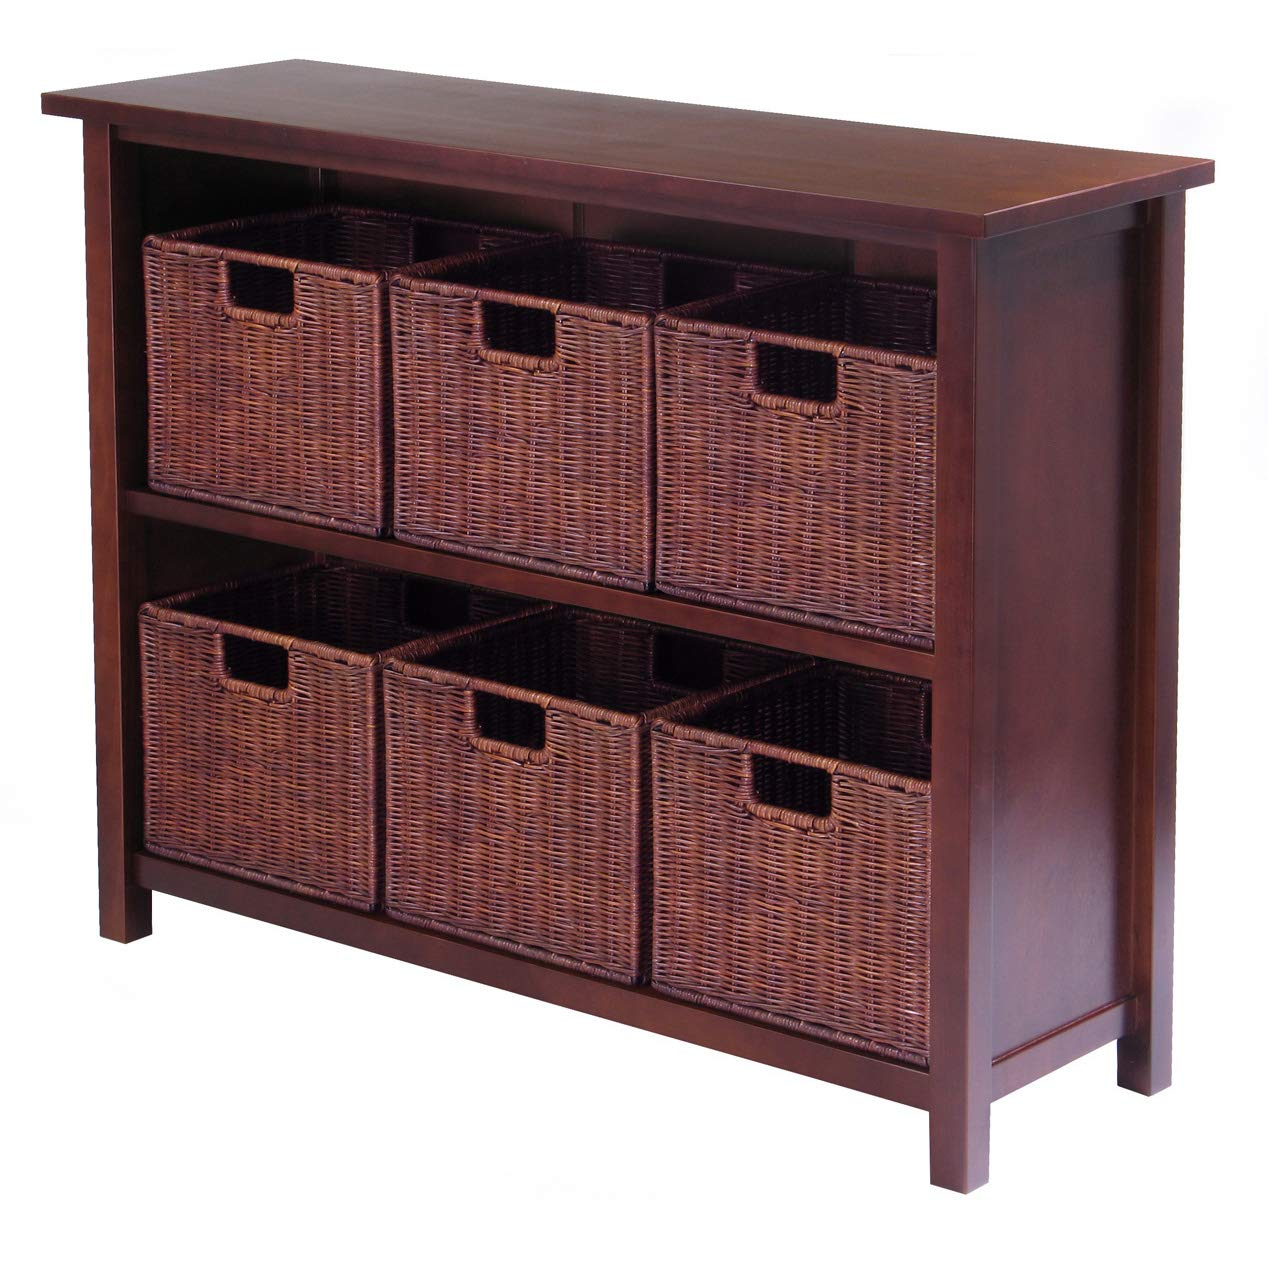 Brown 6 small Winsome Wood Milan Wood 3 Tier Open Cabinet and 6 Rattan Baskets in Antique Walnut Finish